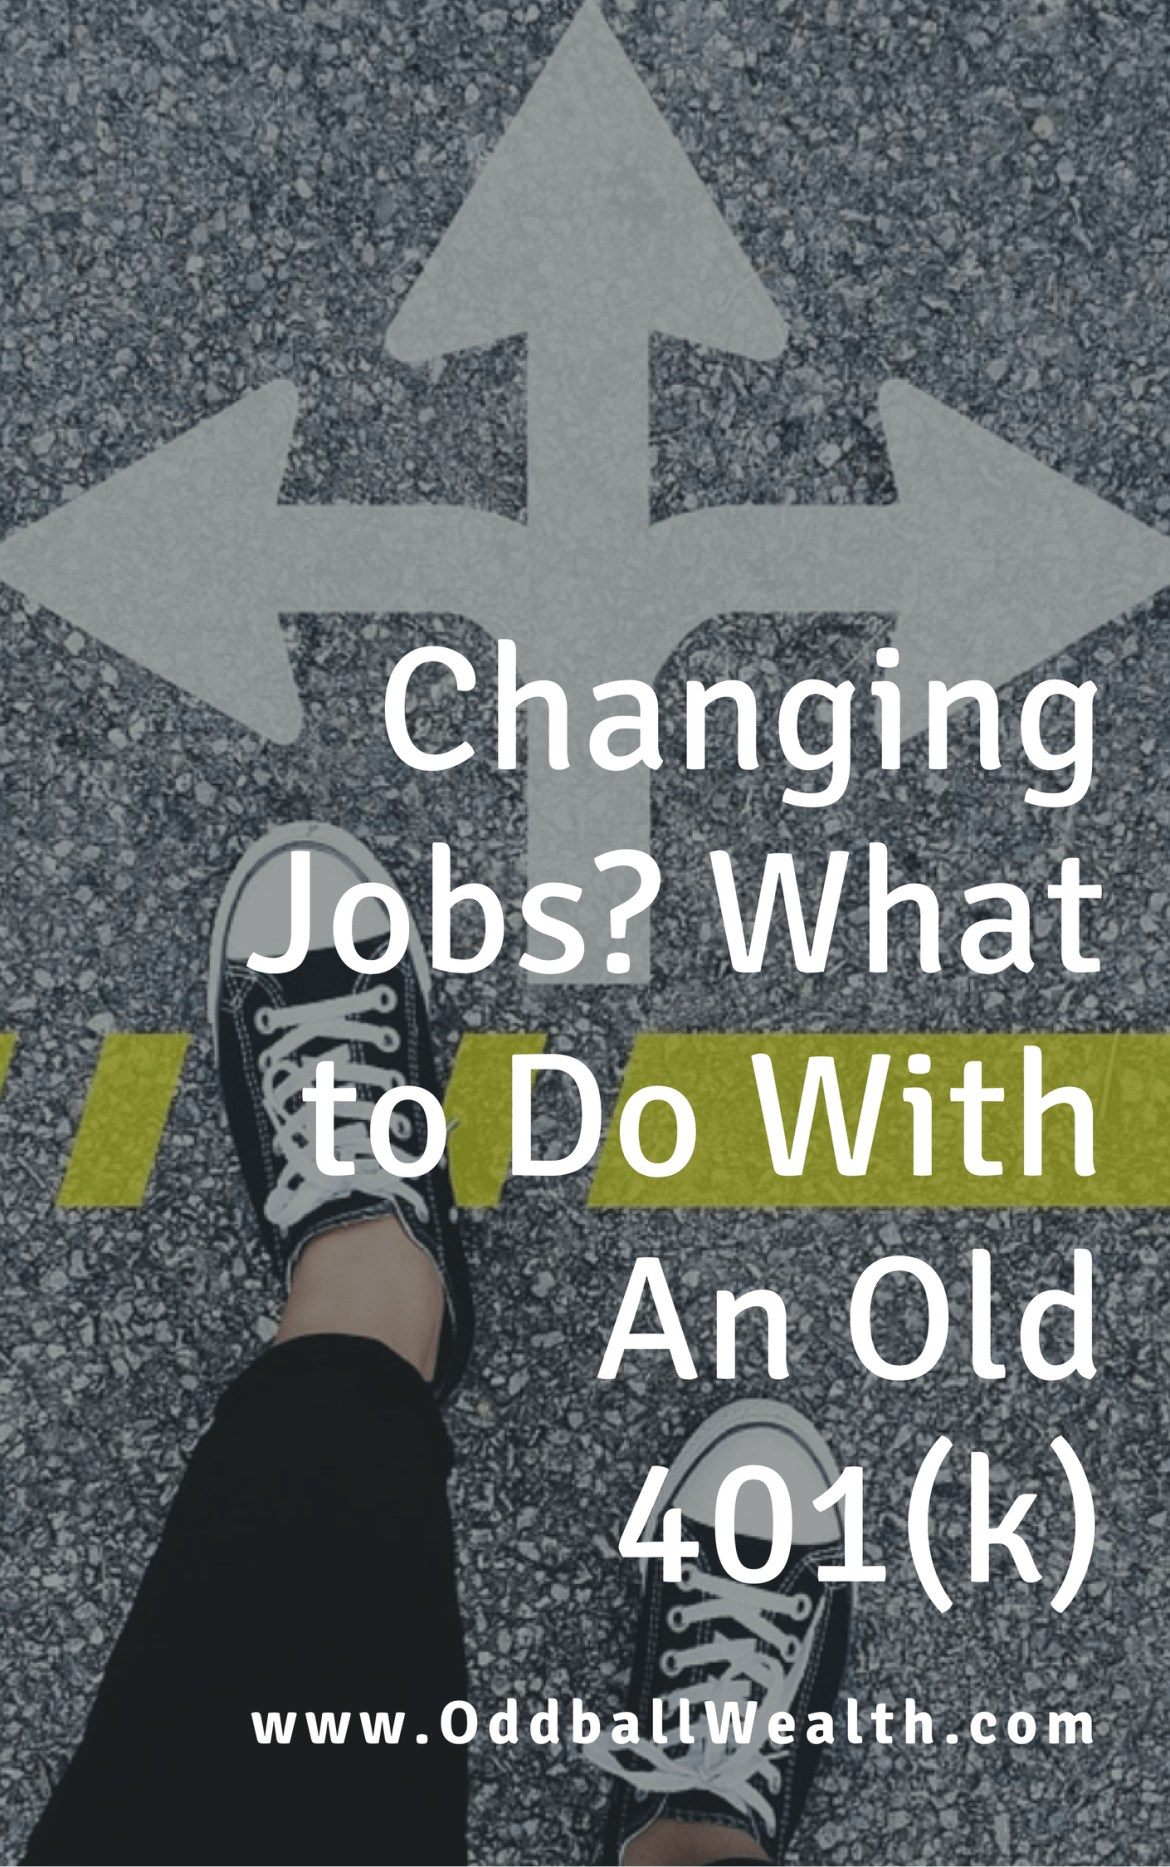 Changing Jobs? What to Do With An Old 401(k)